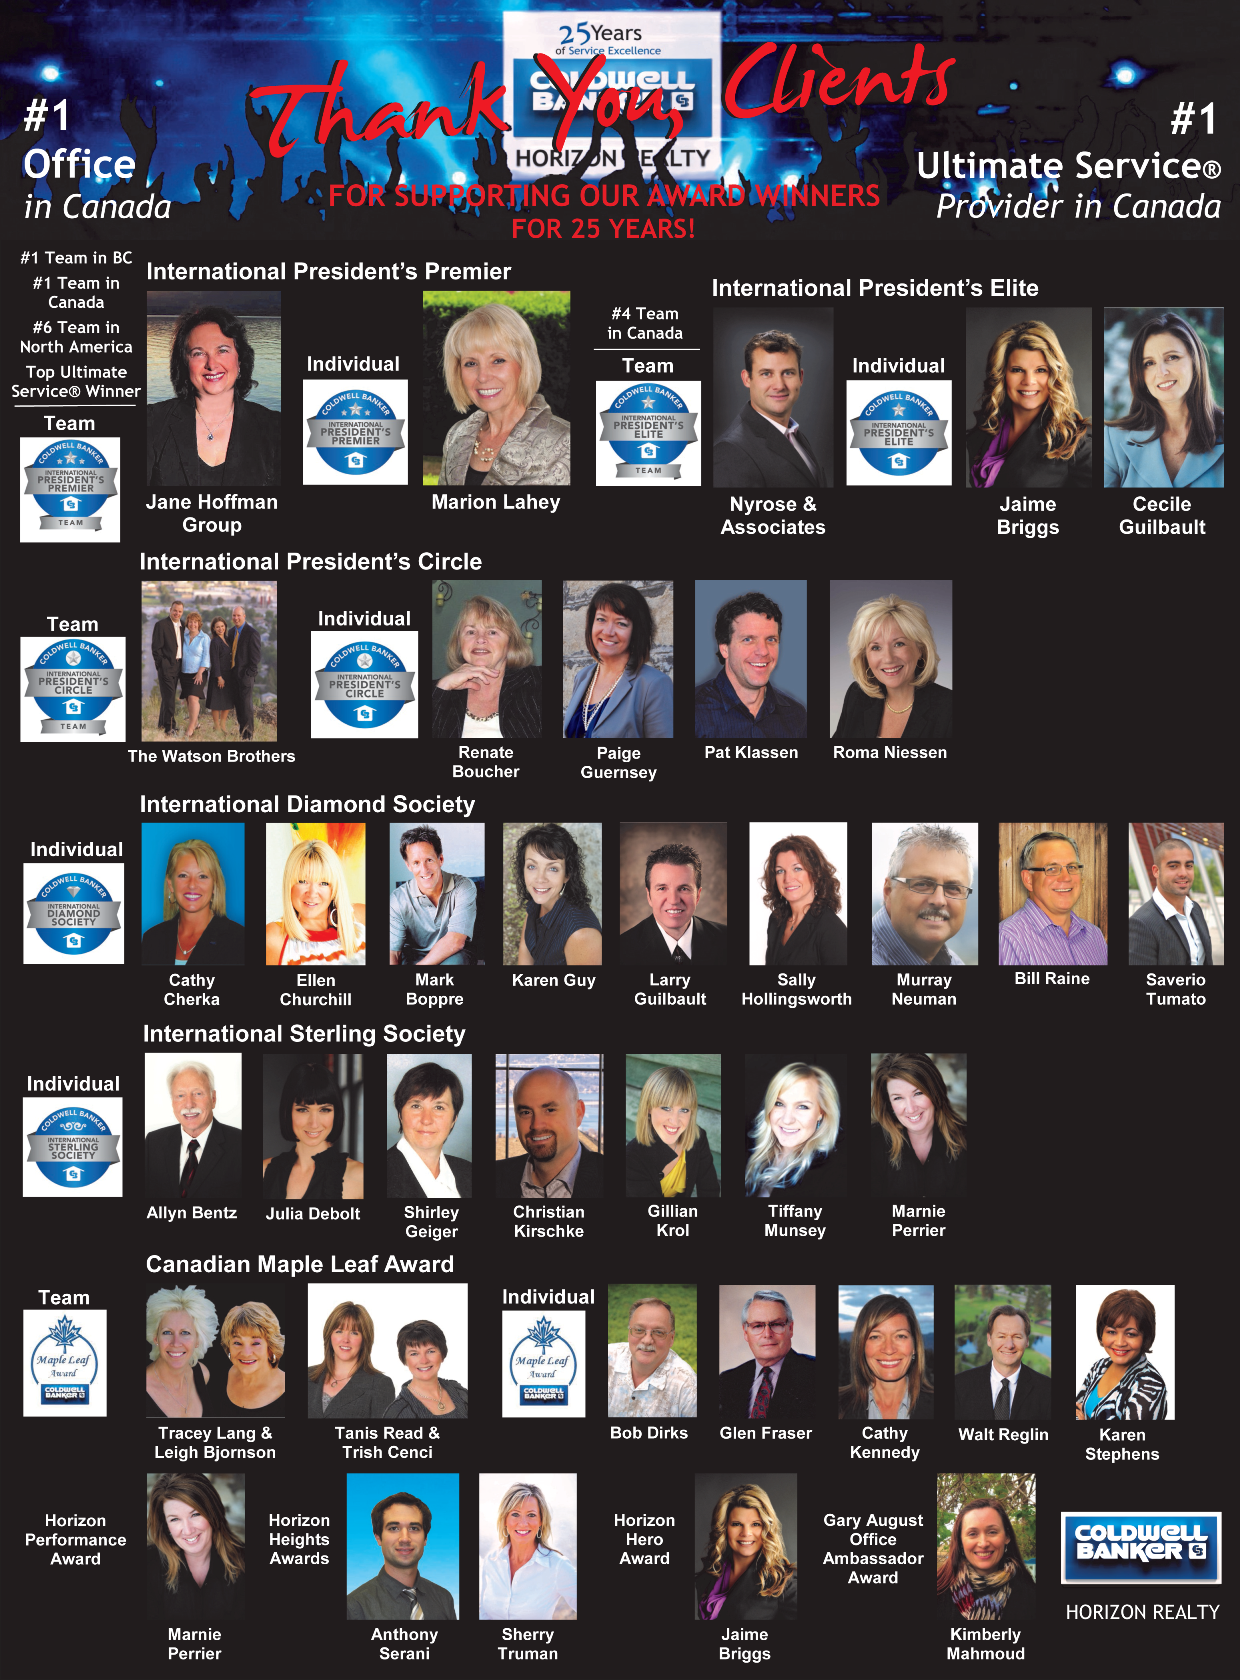 Coldwell Banker Horizon Realty Awards 2015